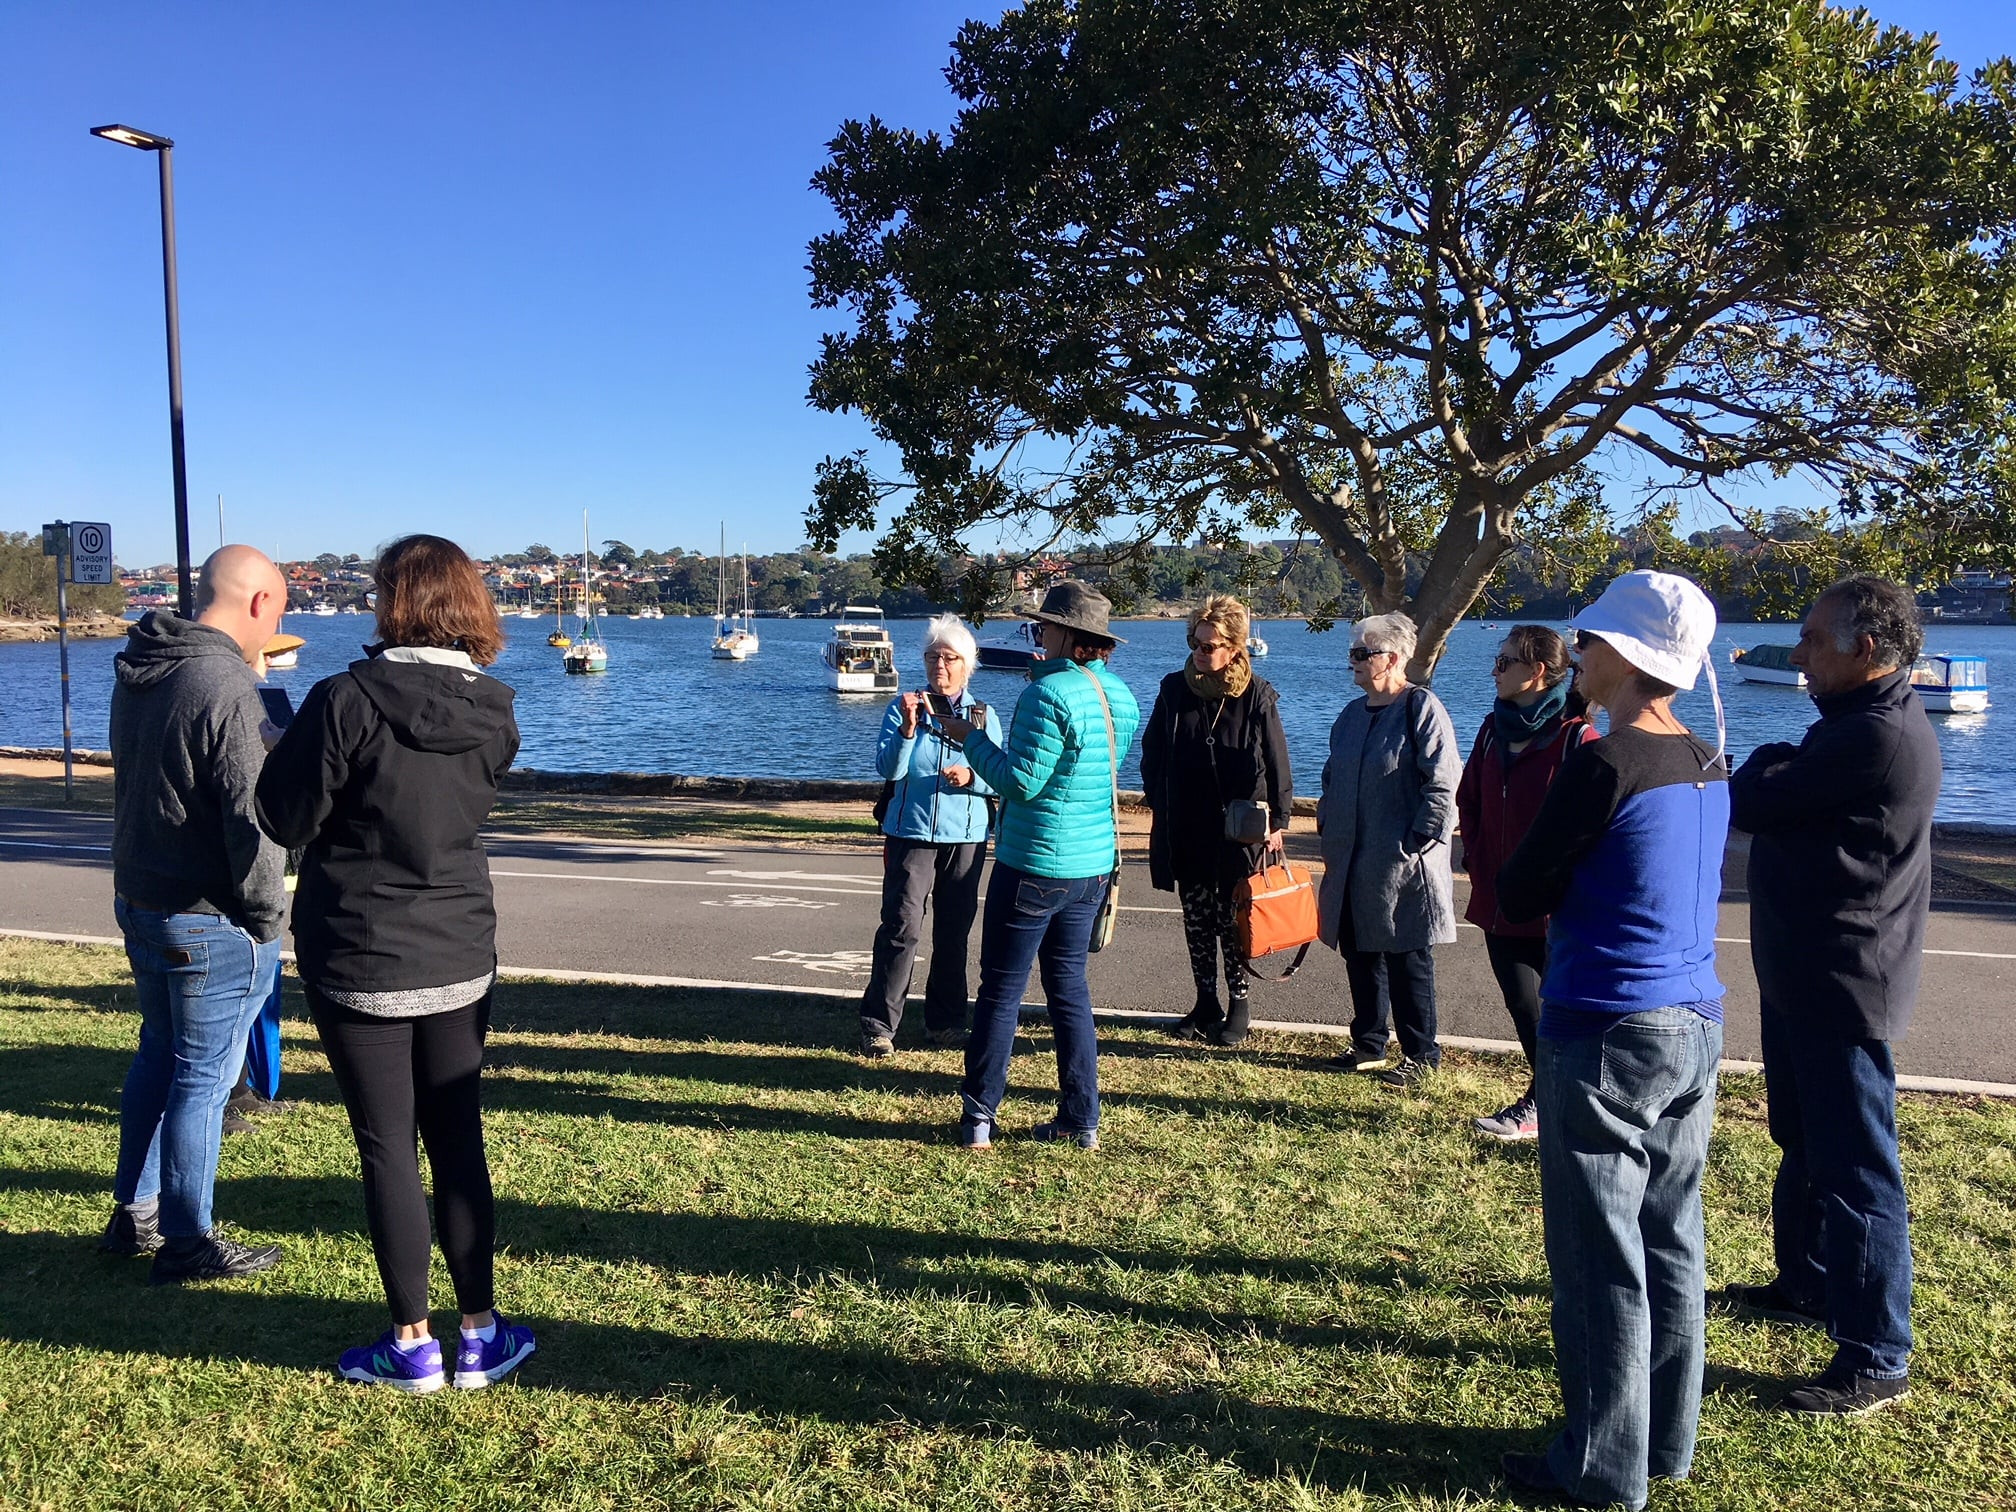 CroakeyGo Callan Park: reflecting on history, and looking towards the future of mental health